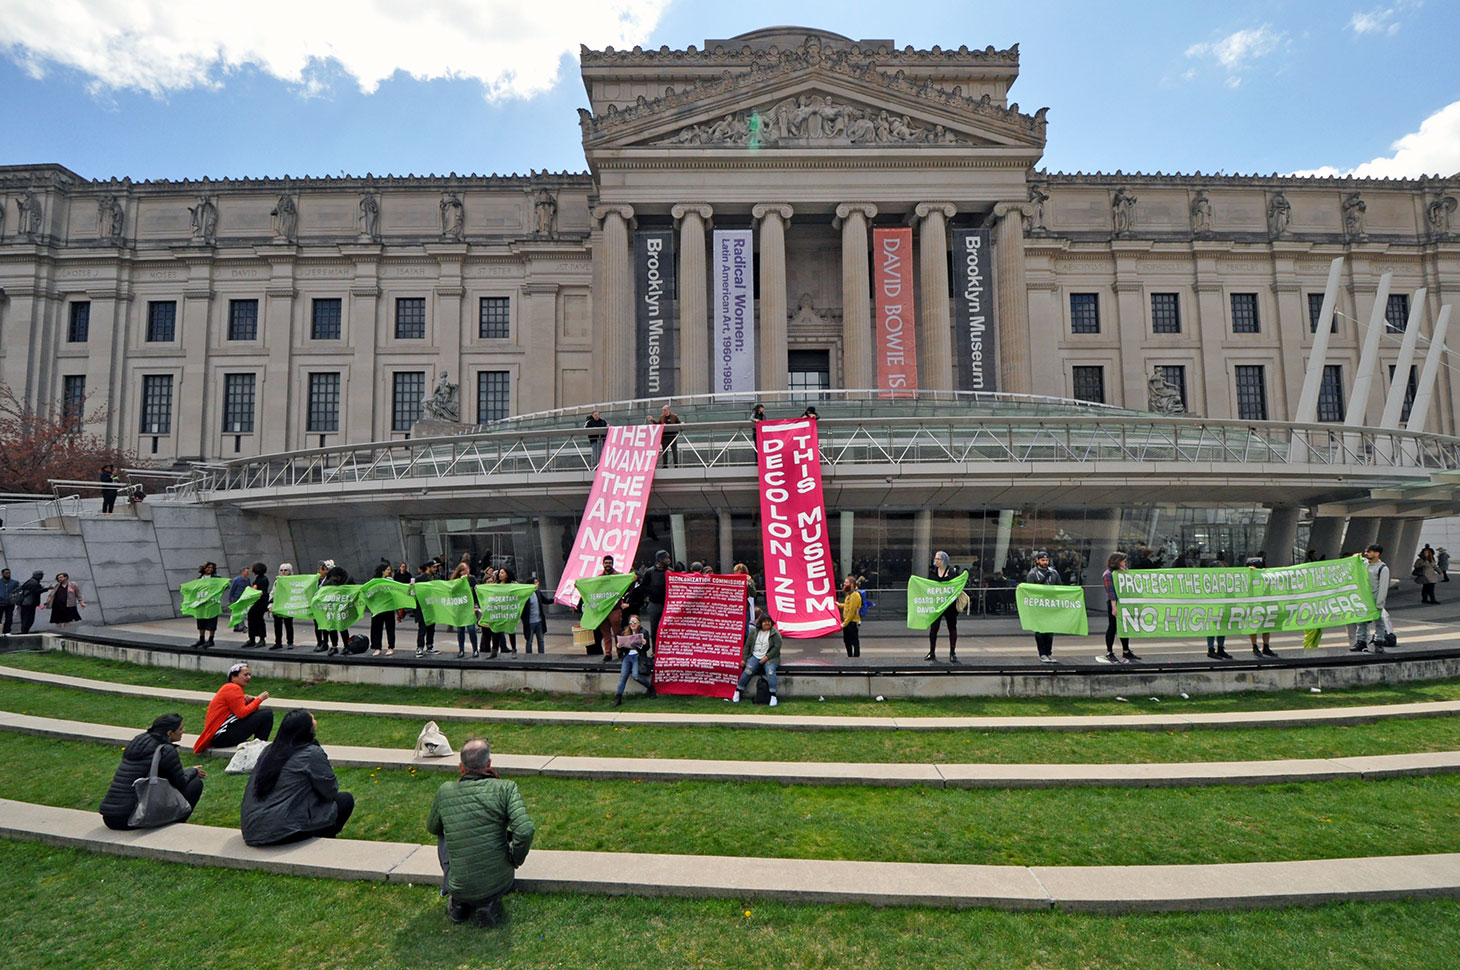 Protesters in front of the Brooklyn Museum in 2018. (photo by Hrag Vartanian)